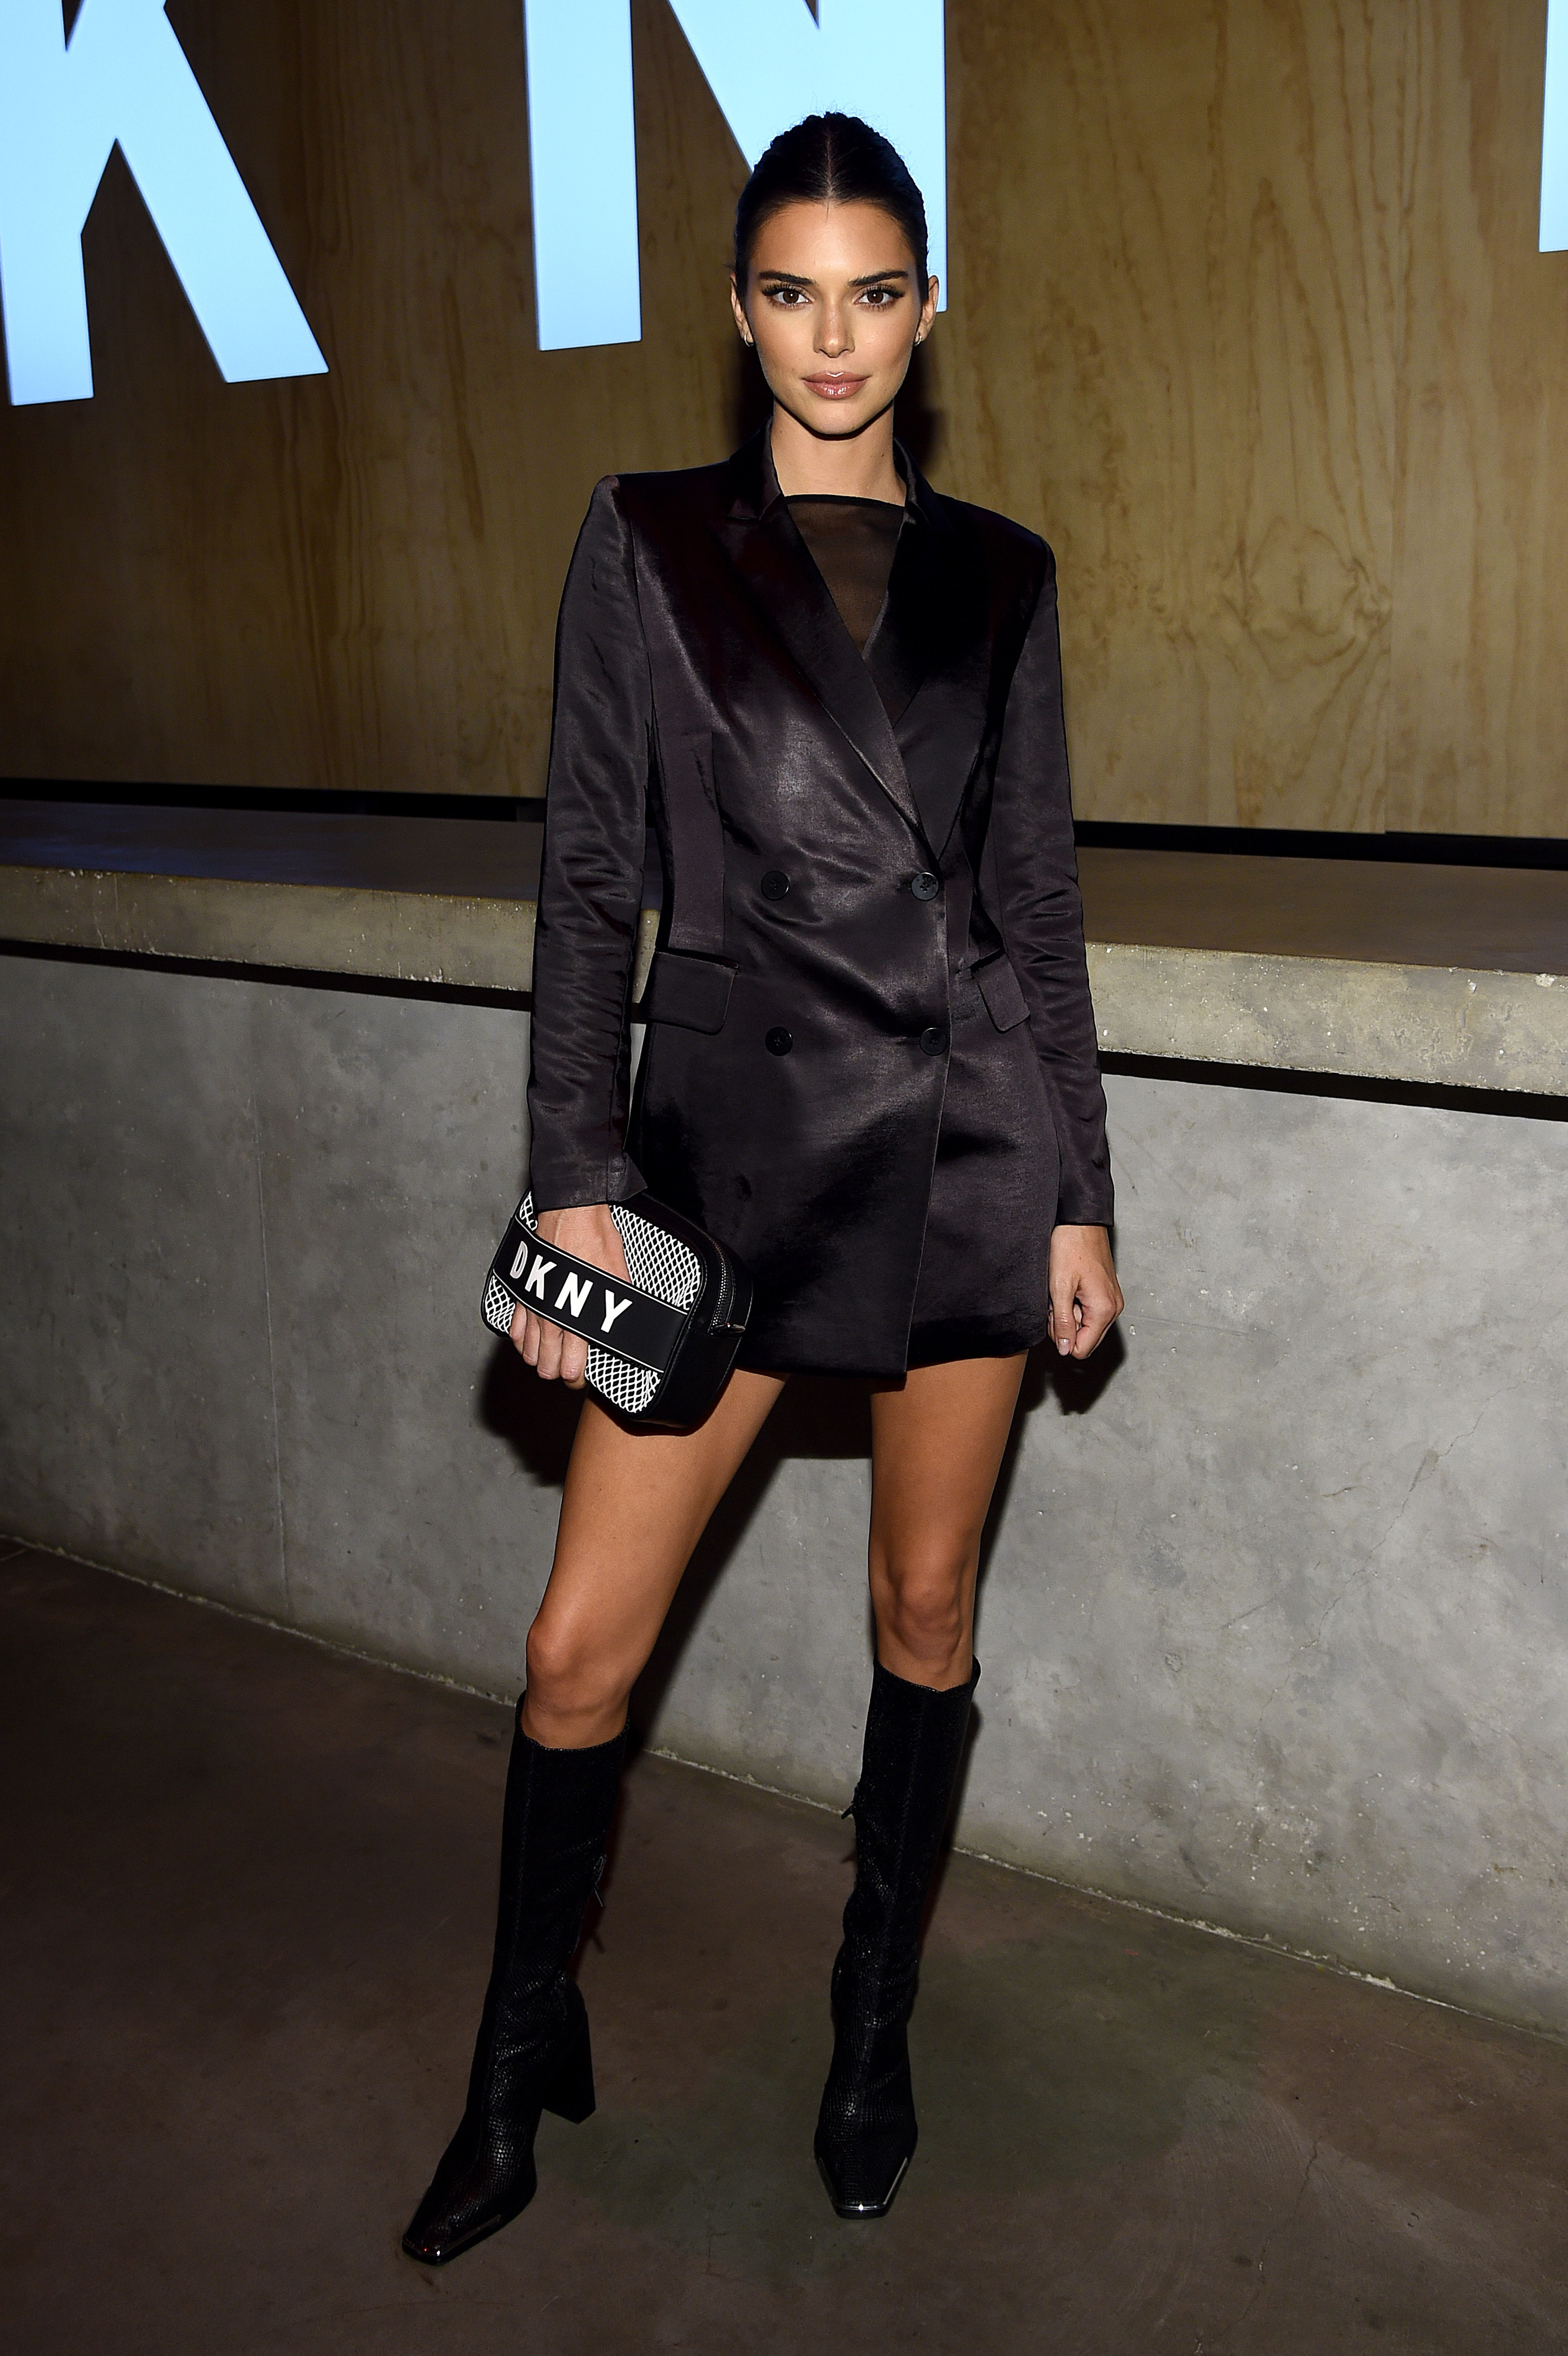 Kendall Jenner Partied in a Blazer, No Pants, and Knee-High Boots